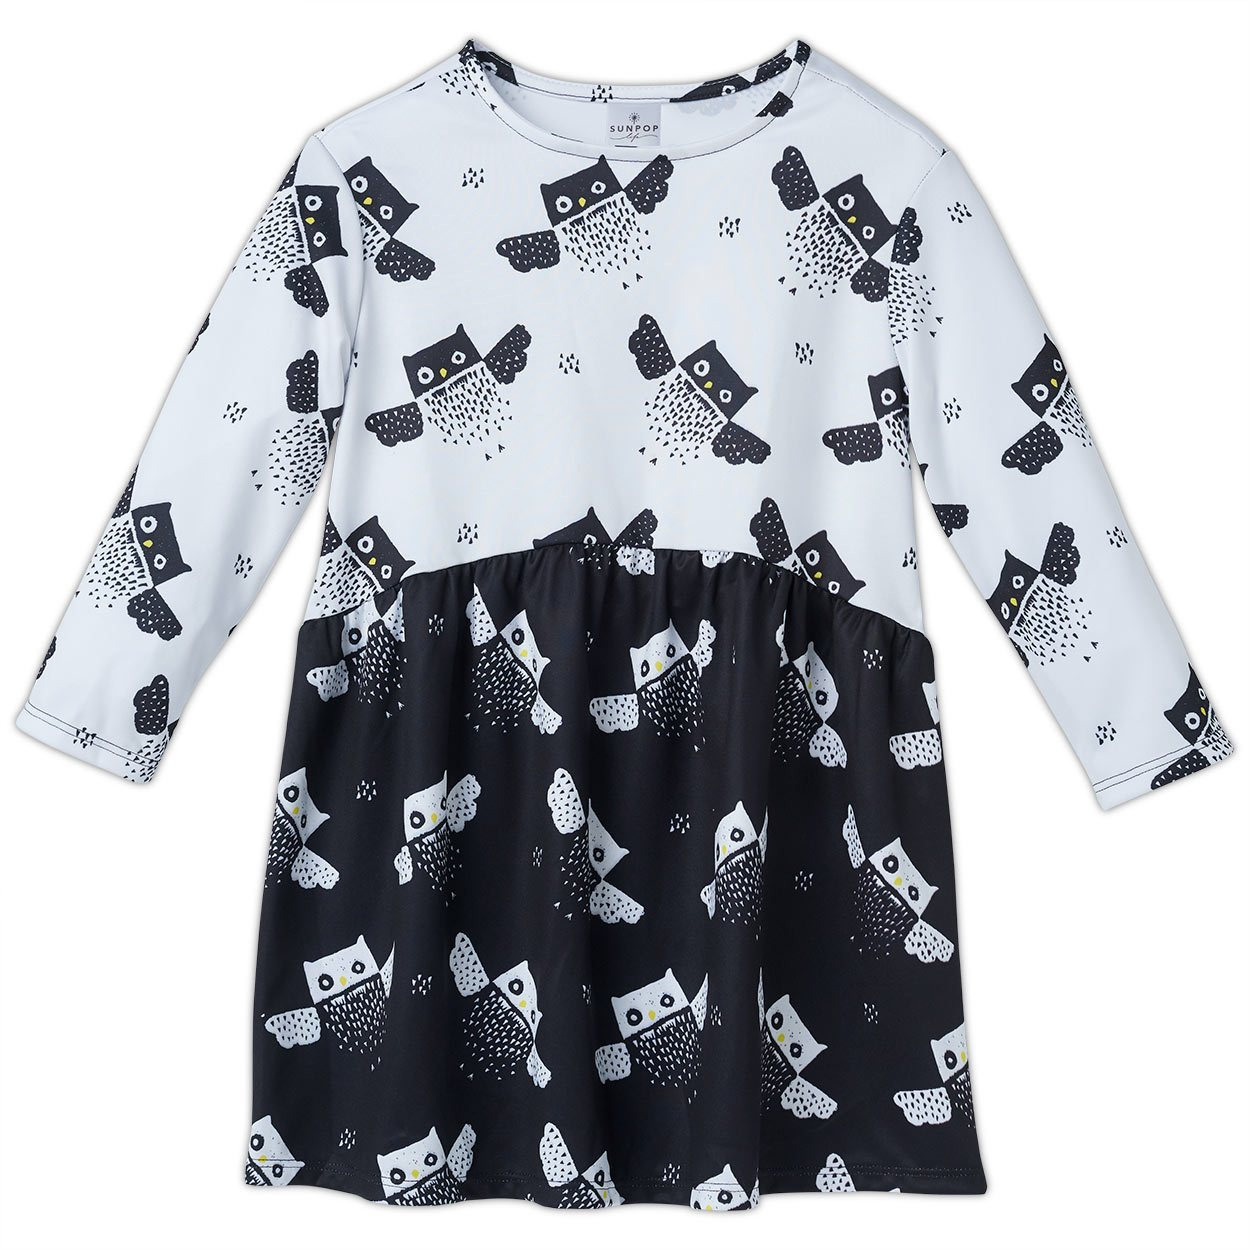 Owls Dress with Matching Shorts